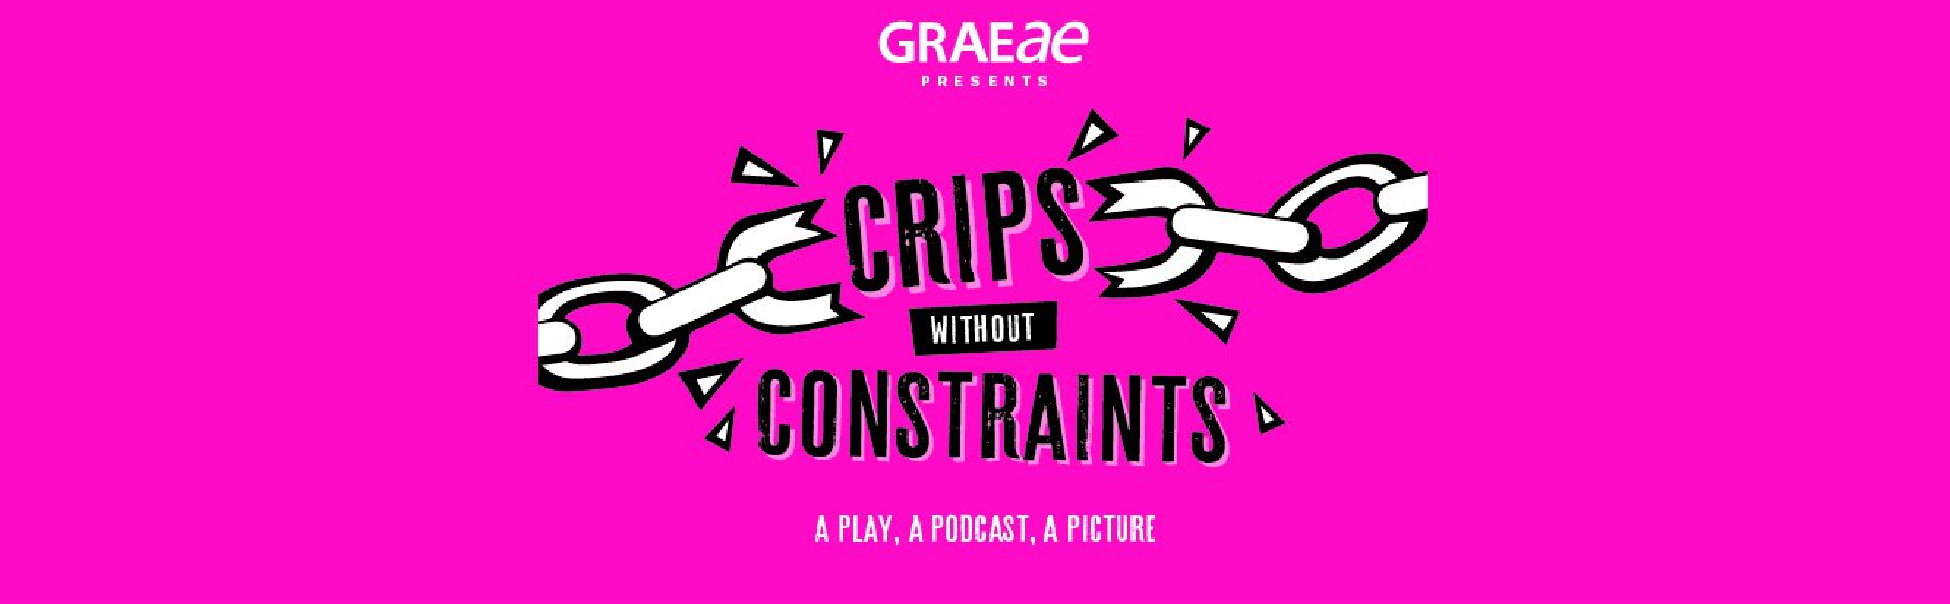 Crips without Constraints: A Play, A Podcast, A Picture writtenin black bold letteringwith a broken chain on either side of the text and a bight magenta background